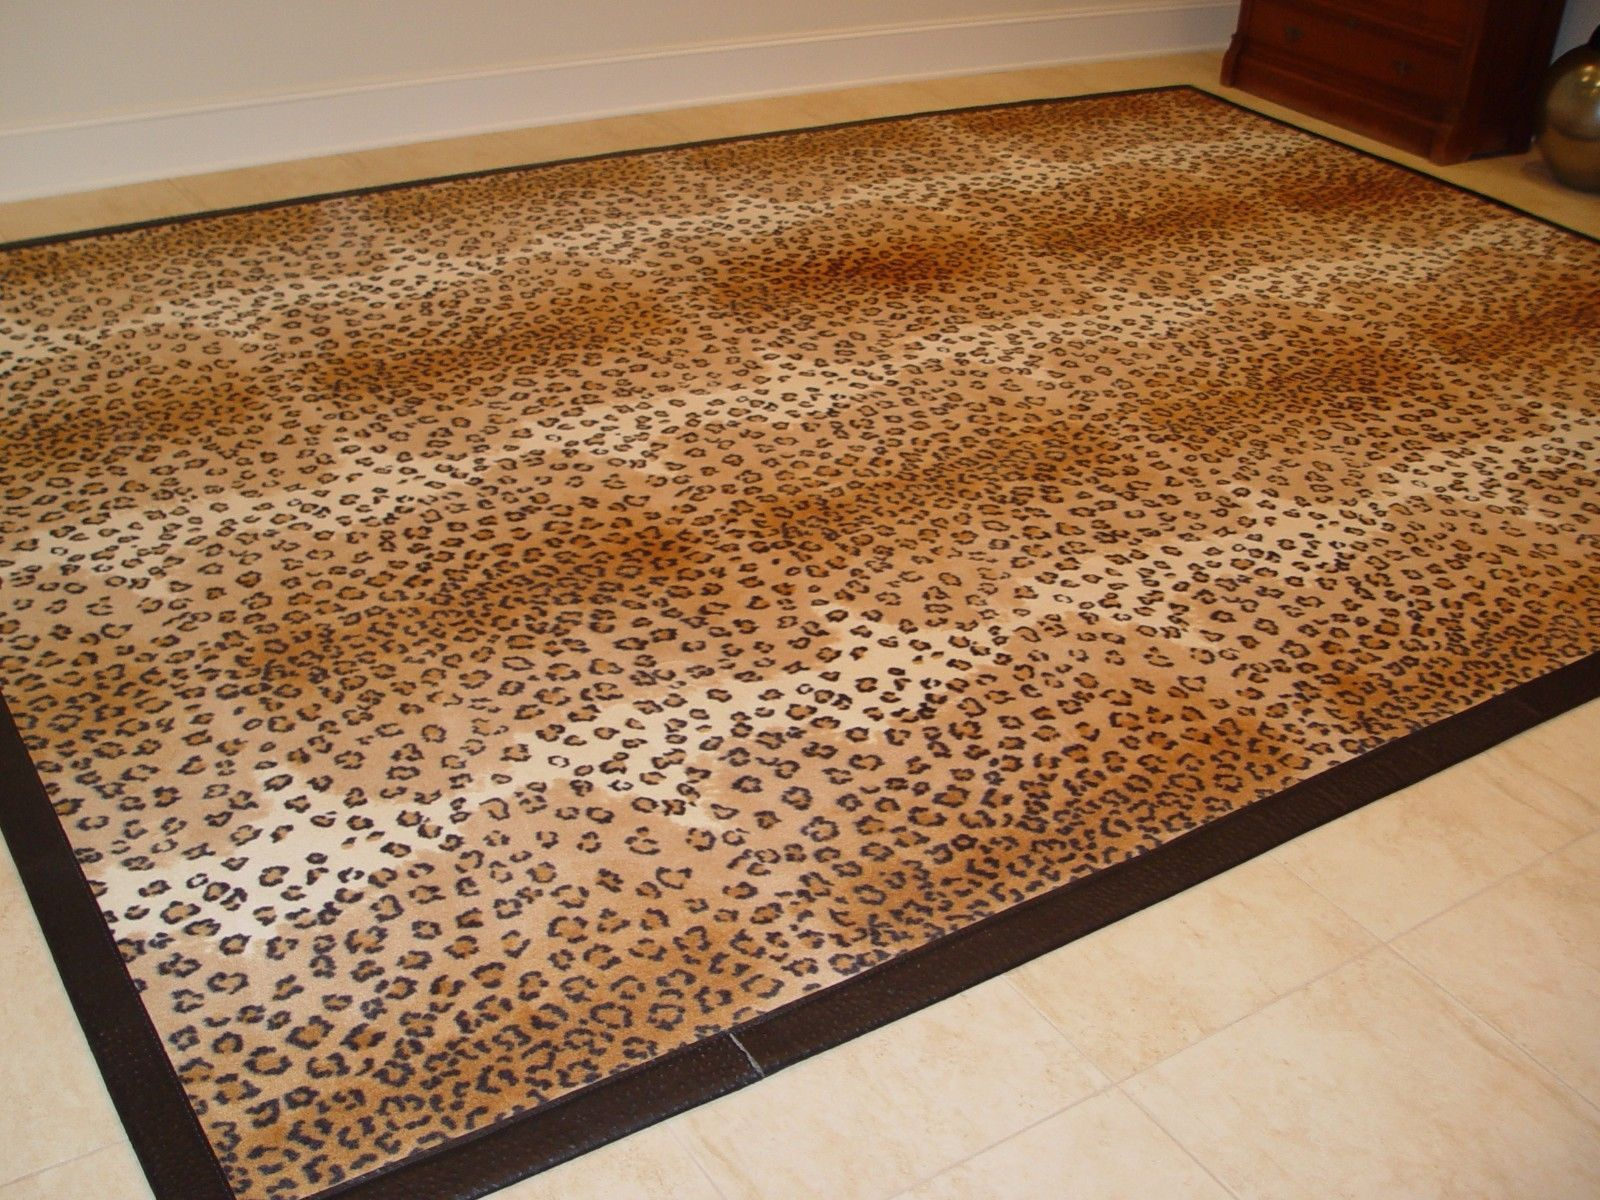 Leopard Print Rug 10 X 14 With Ostrich Leather Trim Leopard Print Rug Zebra Print Rug Cheap Rugs